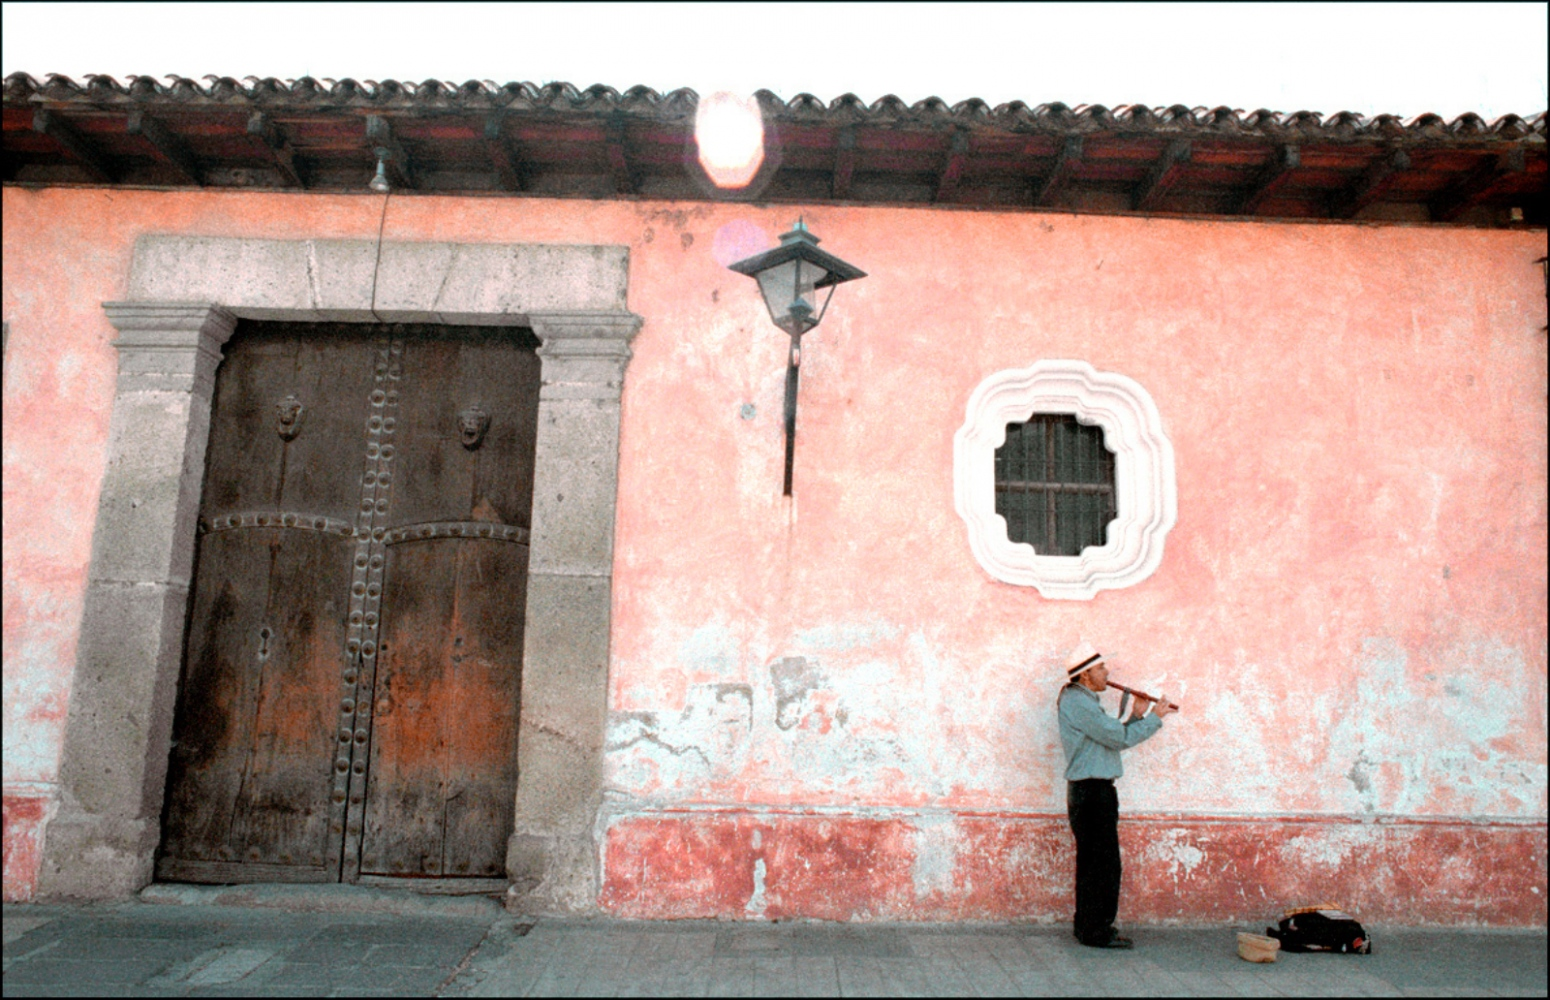 Man Playing Flute, Antigua, Guatemala, April 2006